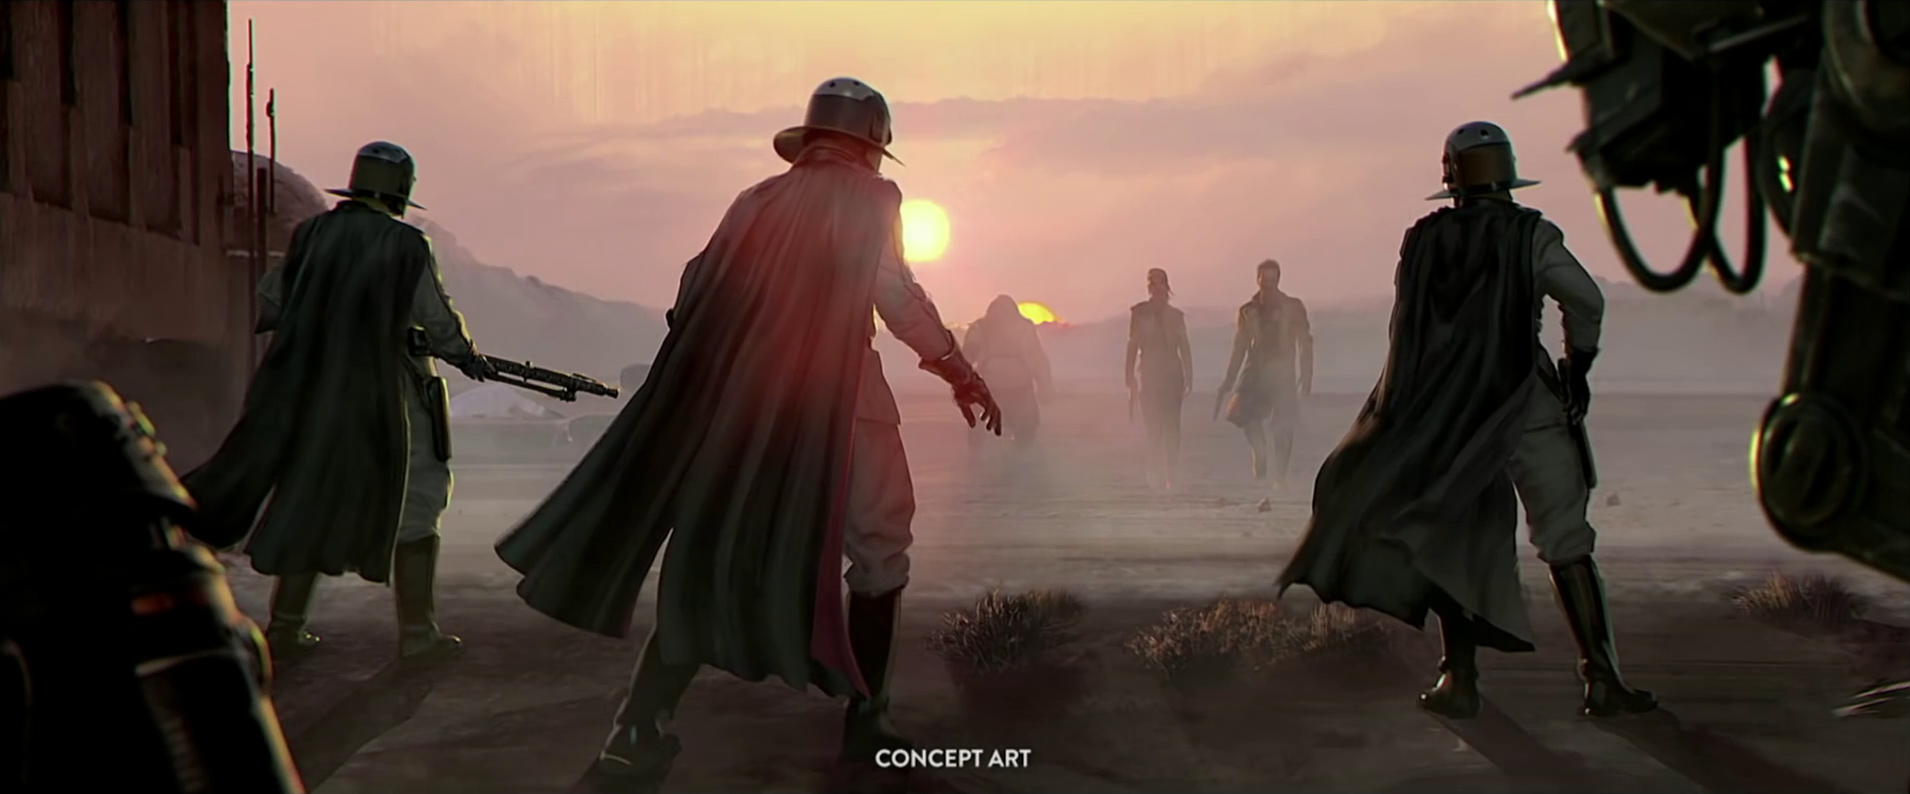 Visceral Games Star Wars Project Desert Concept Art